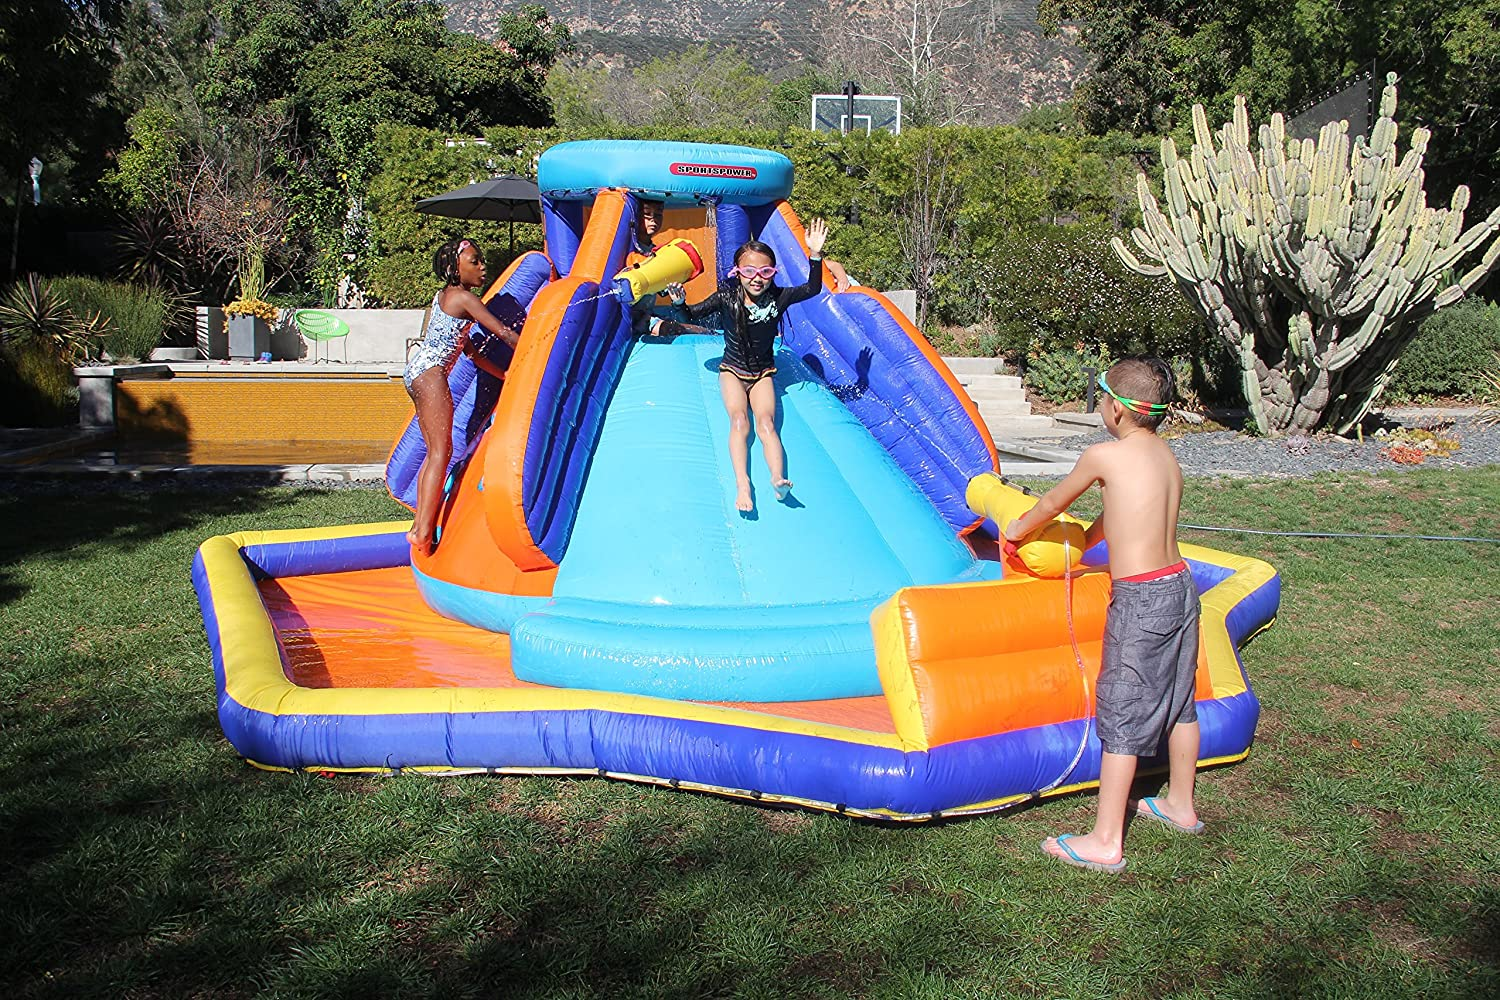 Top 7 Best Water Slide Pools Inflatable Reviews in 2021 12